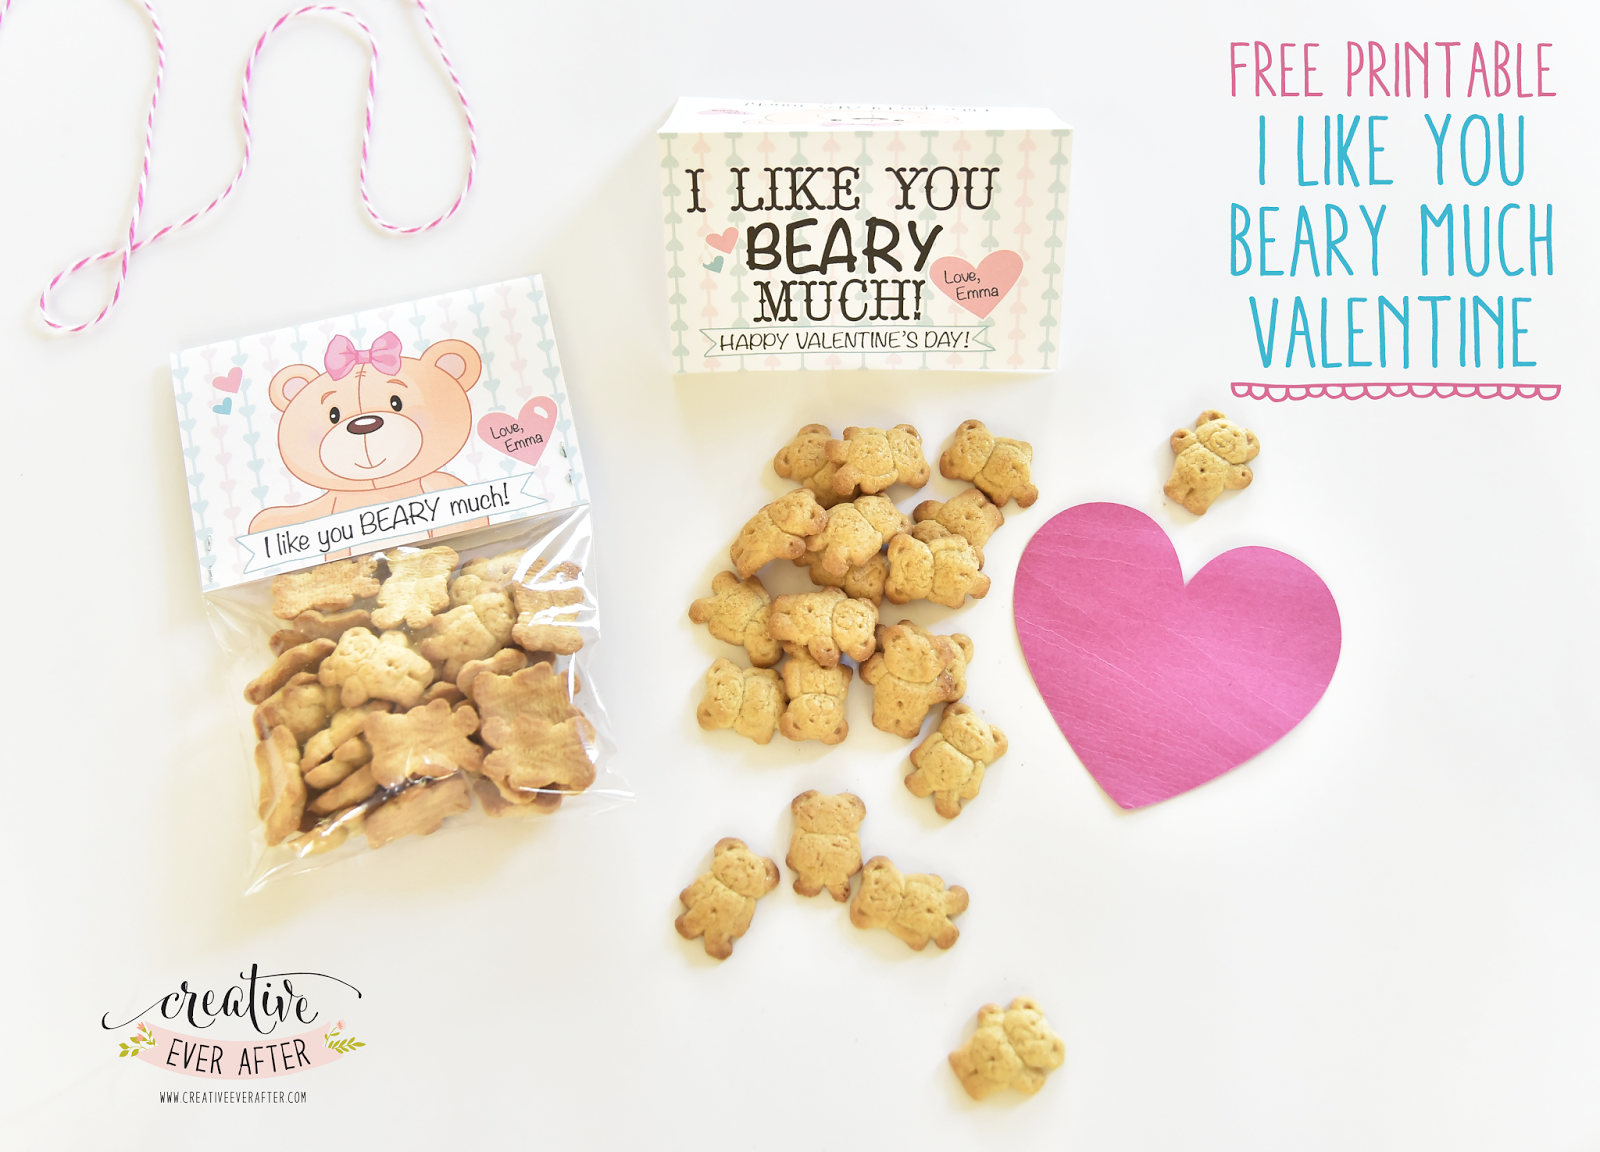 http://creativeeverafter.blogspot.com/2015/02/free-printable-i-like-you-beary-much.html#more